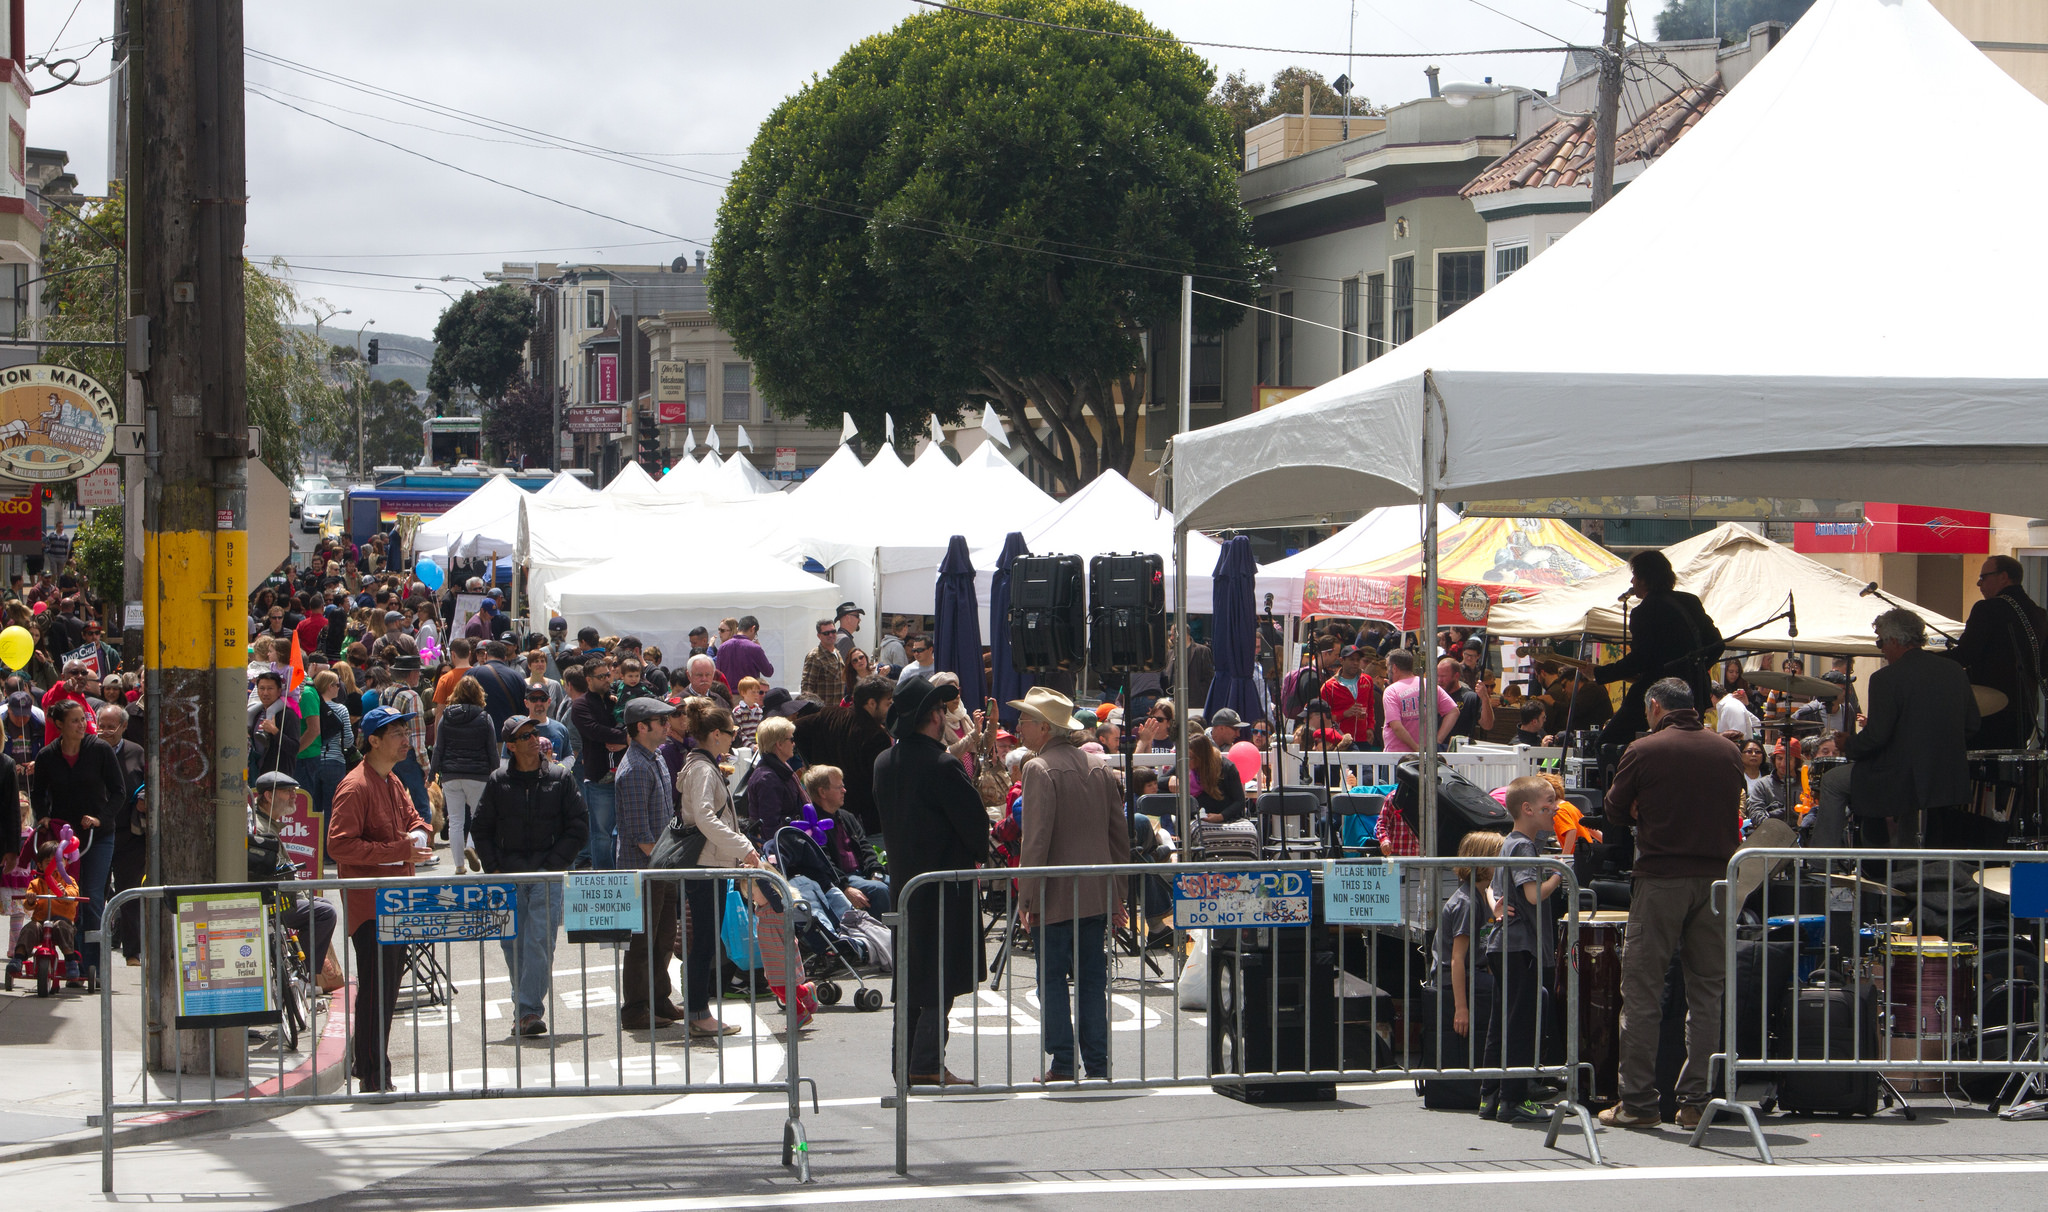 People gathered around a sound stage at a street festival